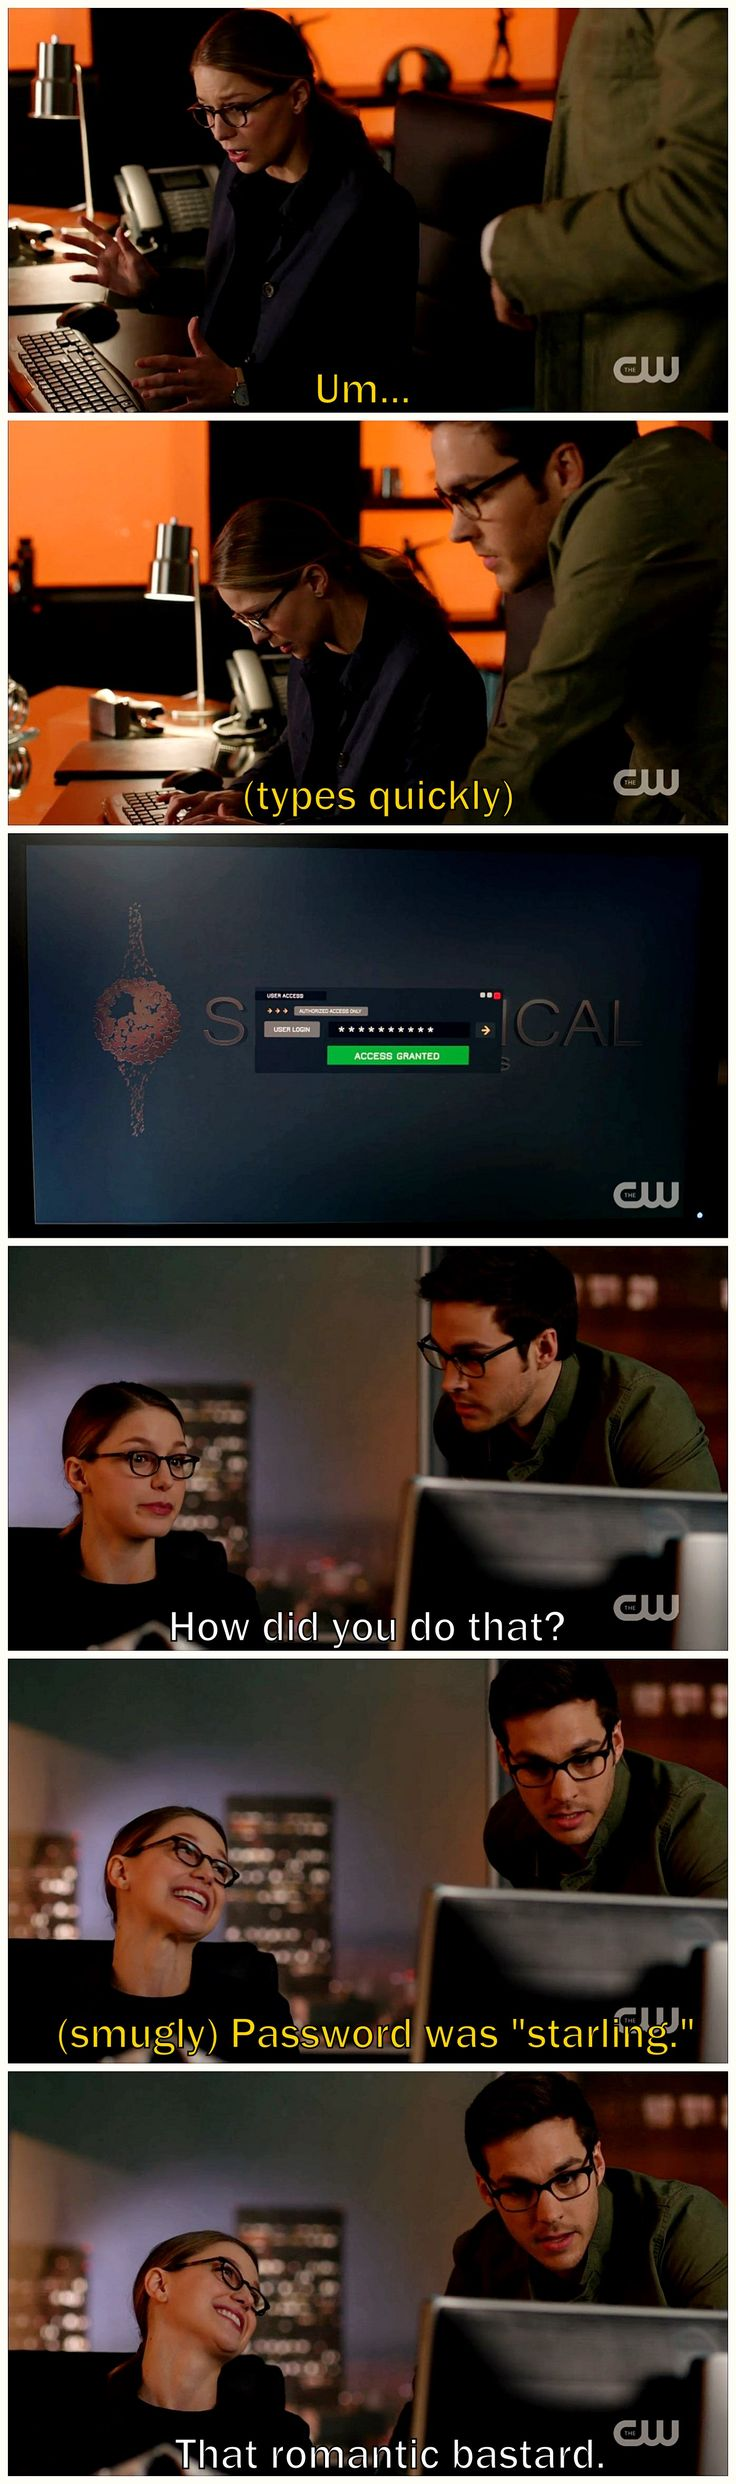 """""""That romantic bastard."""" And my favorite line (arguably, b/c""""mannection"""") of Supergirl 2x18 belongs to Mon-El. Lol, I love this cute & wacky duo working together. This kind of comedy is what S1 was missing & it makes me so happy. This scene reminds me of Veronica Mars, Nancy Drew, Scooby Doo, etc. Kara and Mon are adorably awesome.